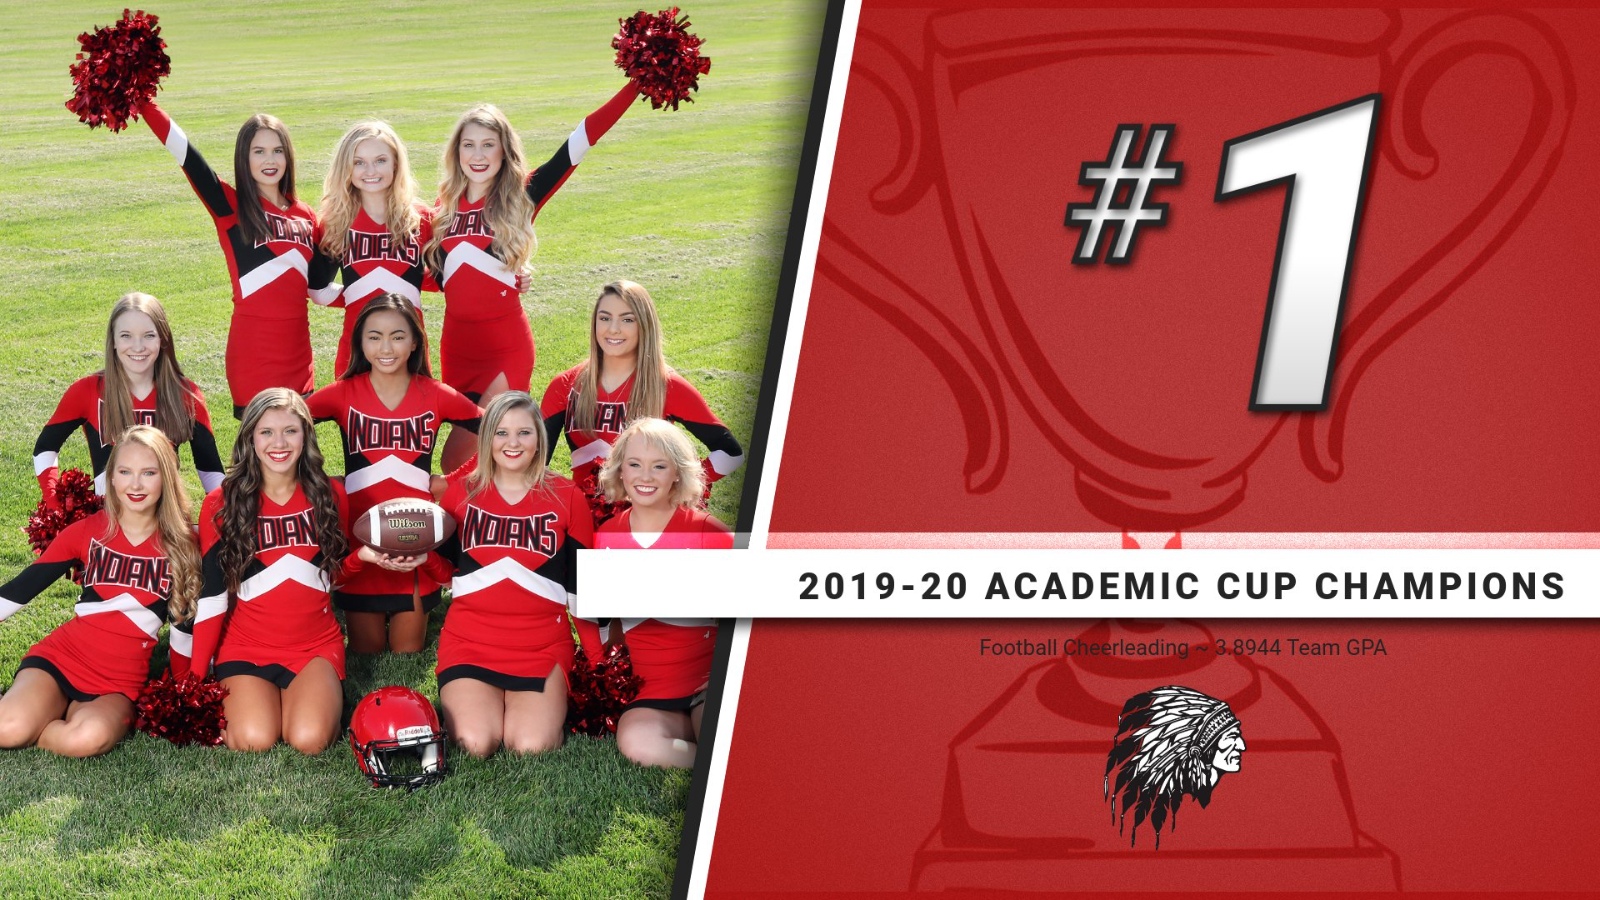 Football Cheerleaders Win the Varsity Academic Cup